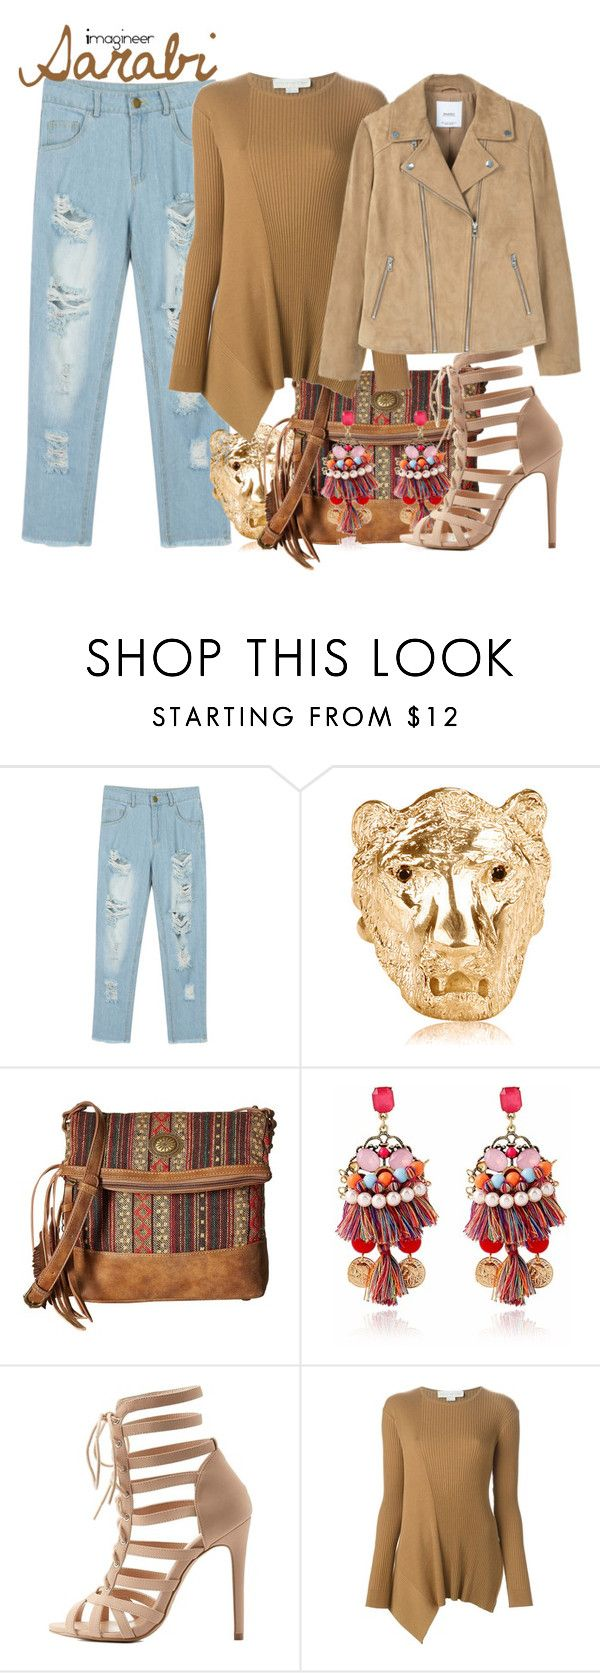 """Sarabi (The Lion King)"" by claucrasoda ❤ liked on Polyvore featuring WithChic, DOMINIQUE LUCAS, American West, Charlotte Russe, STELLA McCARTNEY, MANGO and cosmiscjewelry"